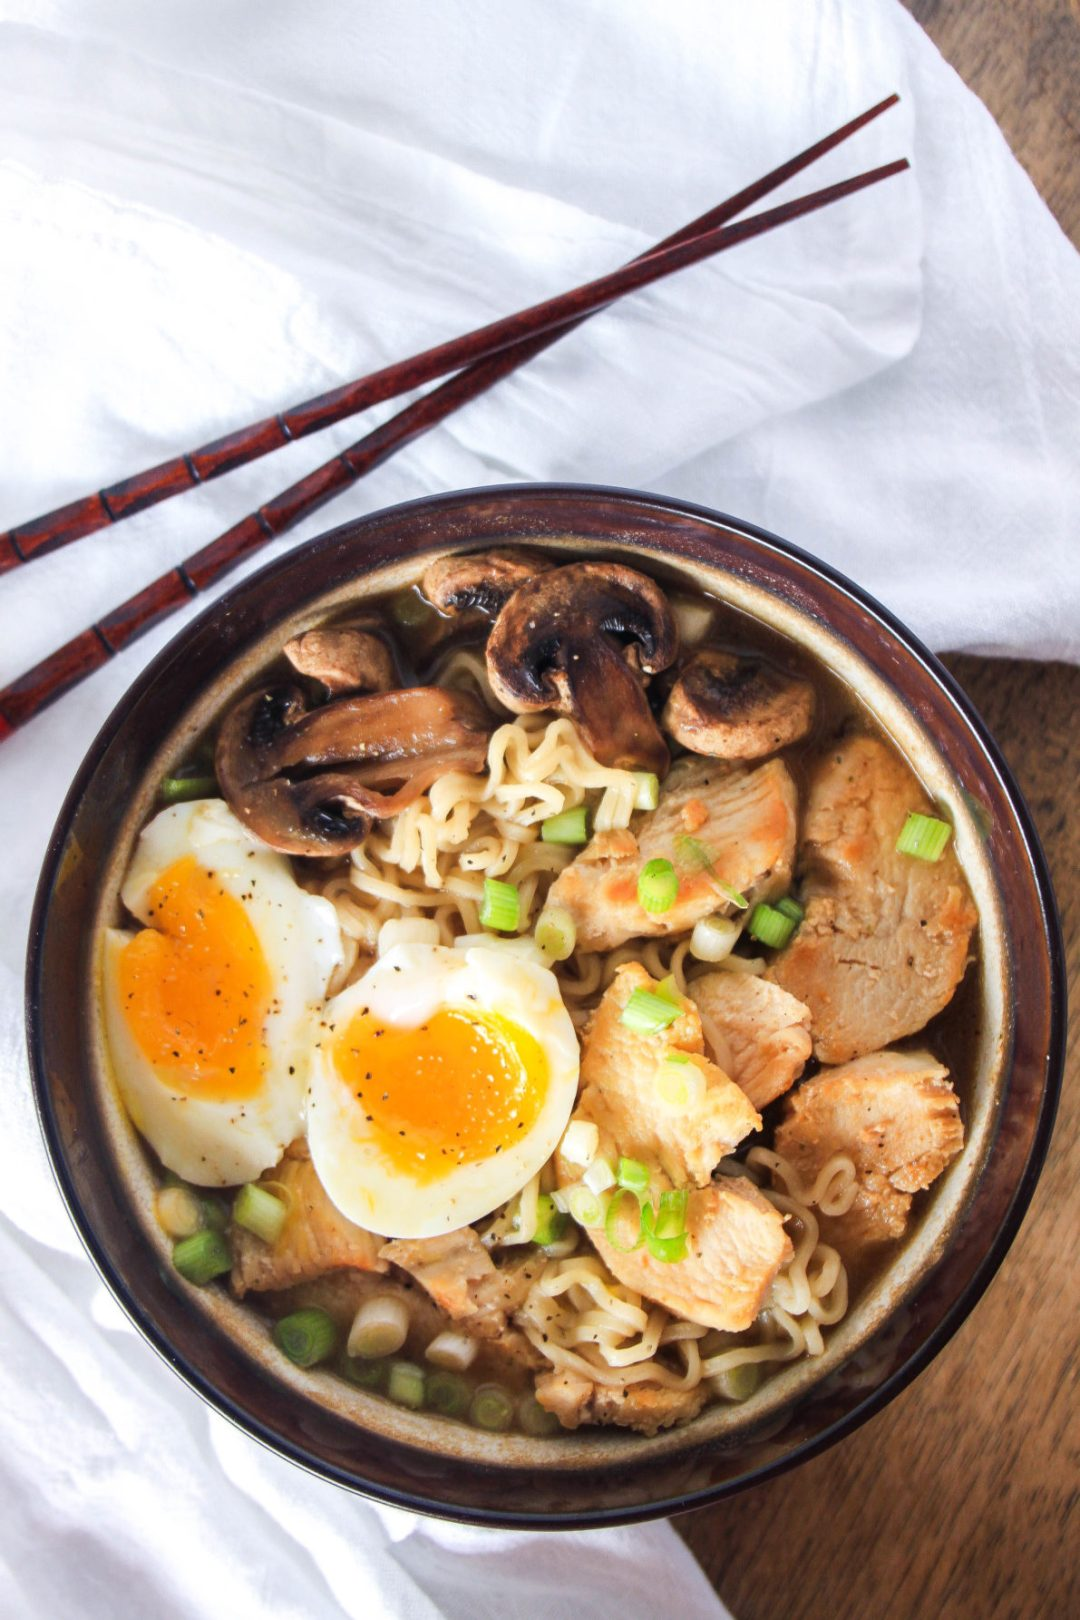 30 Healthy Ramen Noodle Recipes - Japanese Ramen with Chicken via Wanderzest | https://www.roseclearfield.com